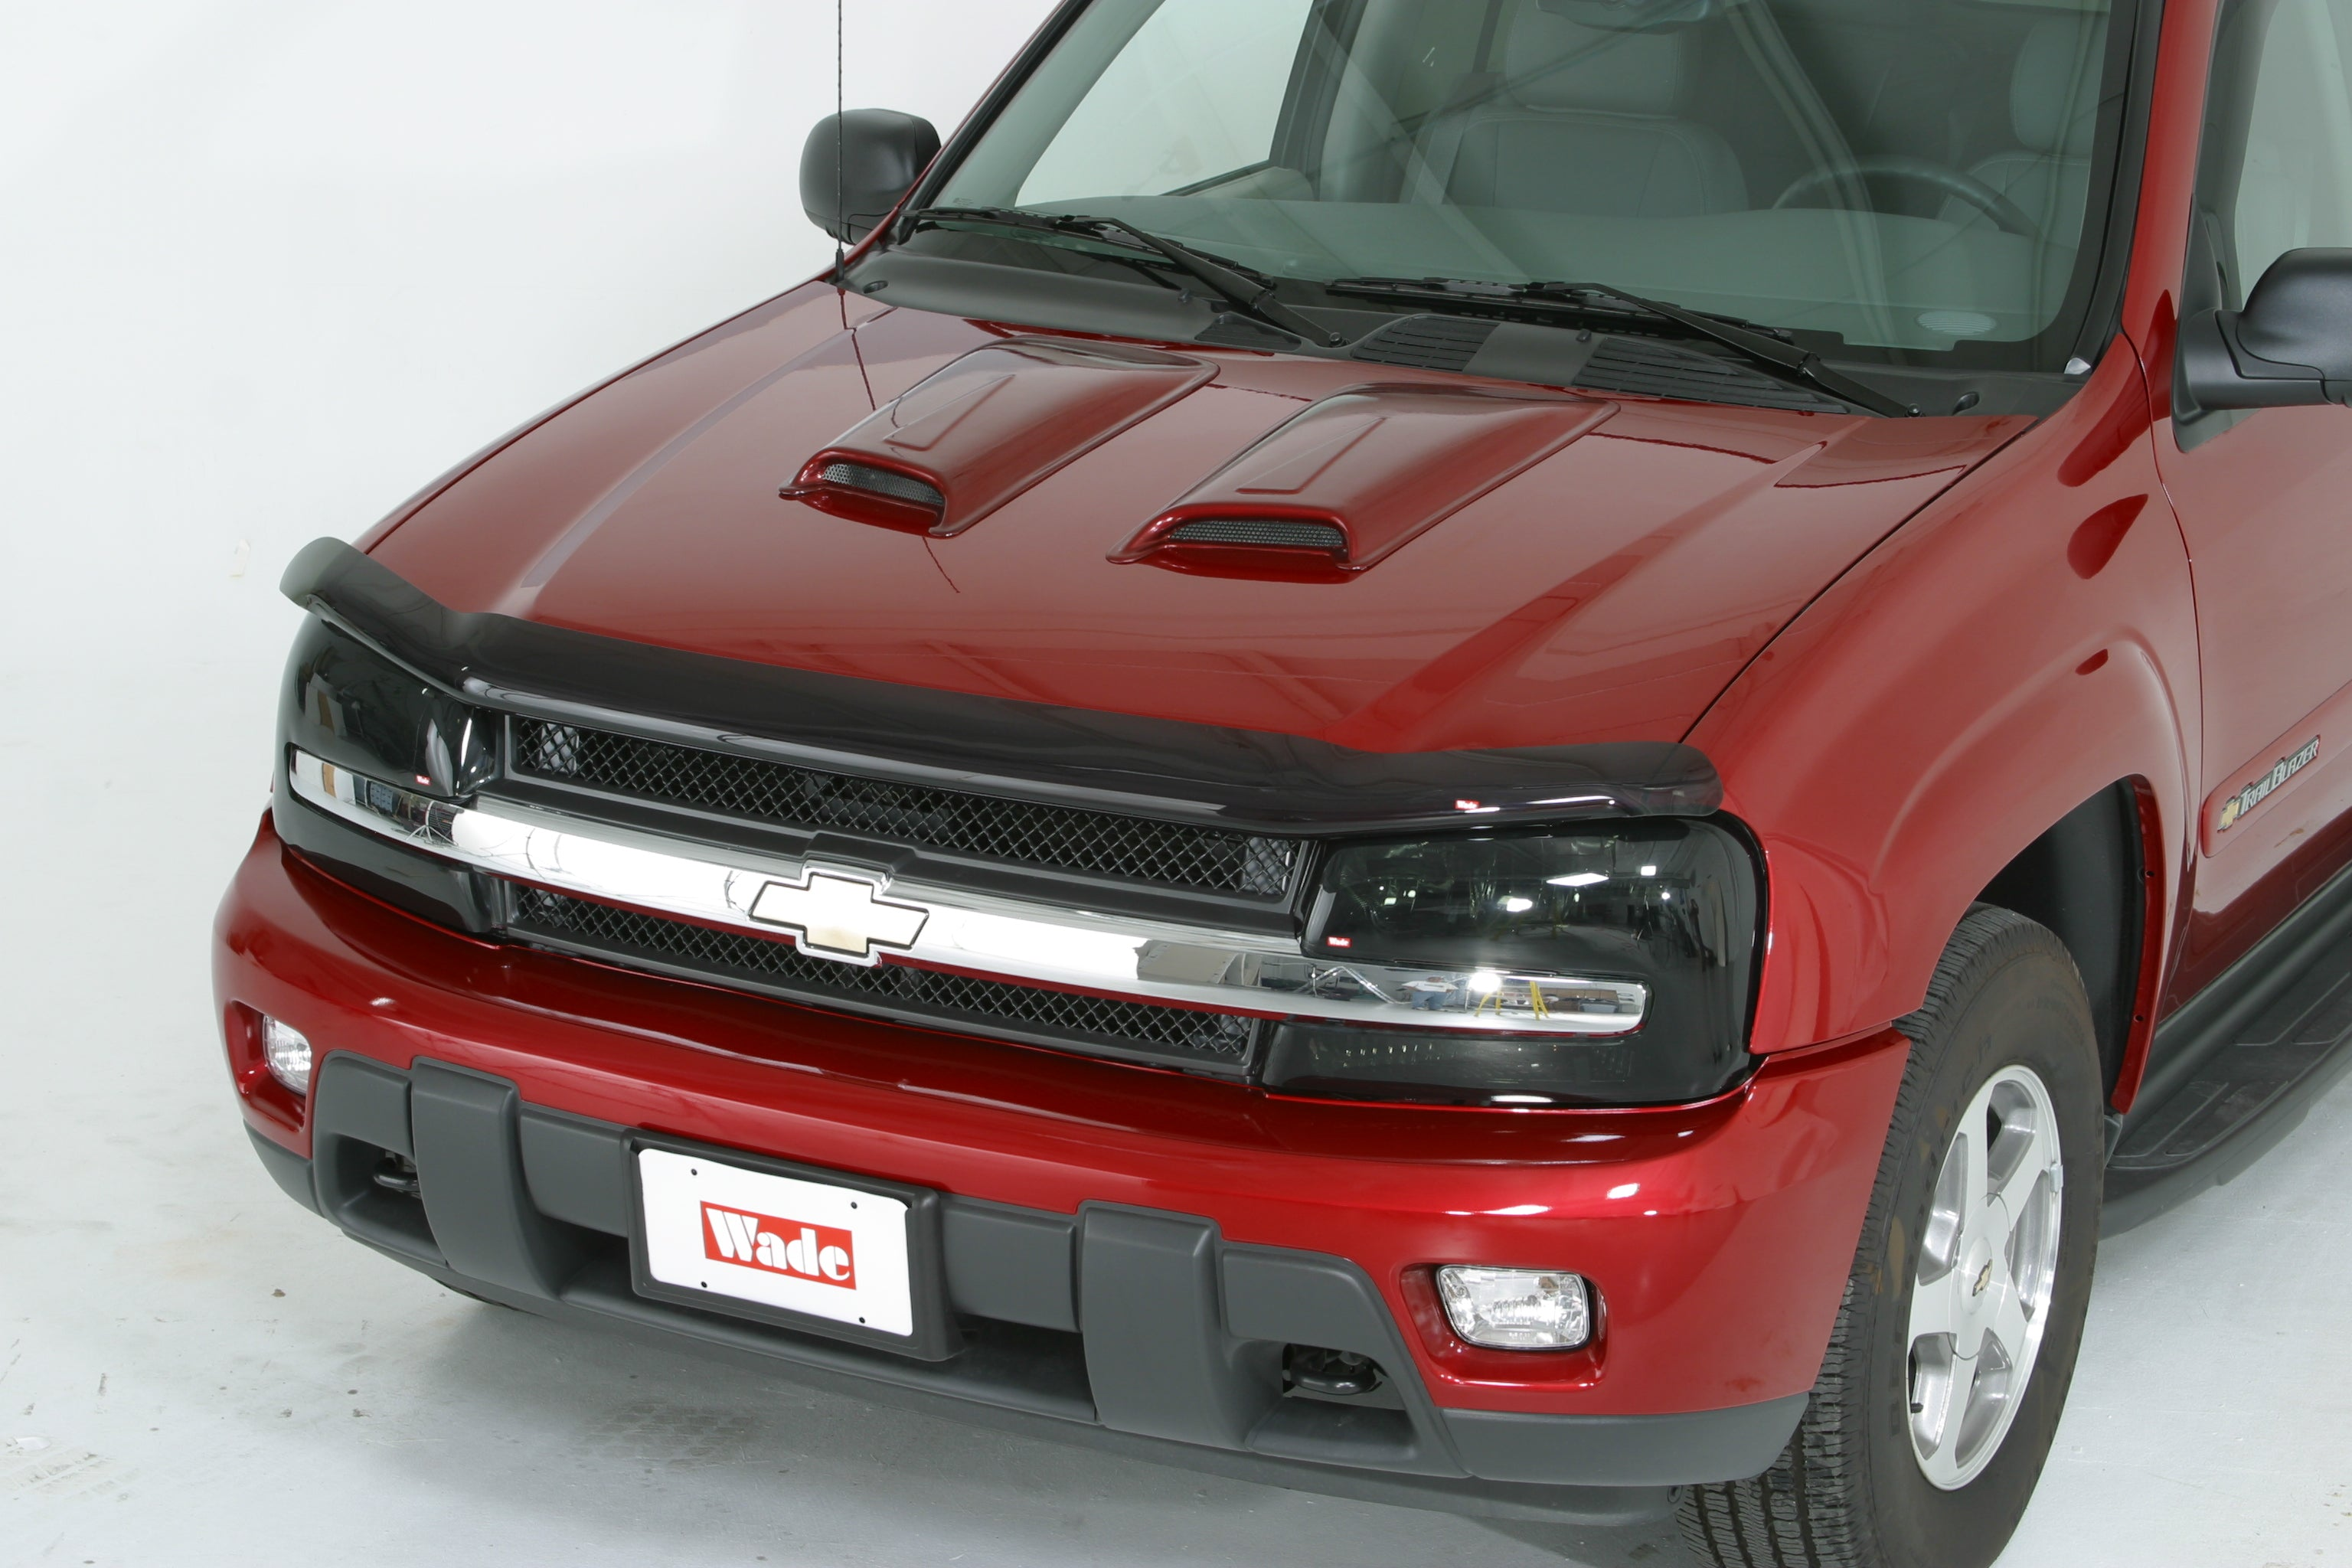 1996 Nissan Pickup 4WD (flush mount) Head Light Covers